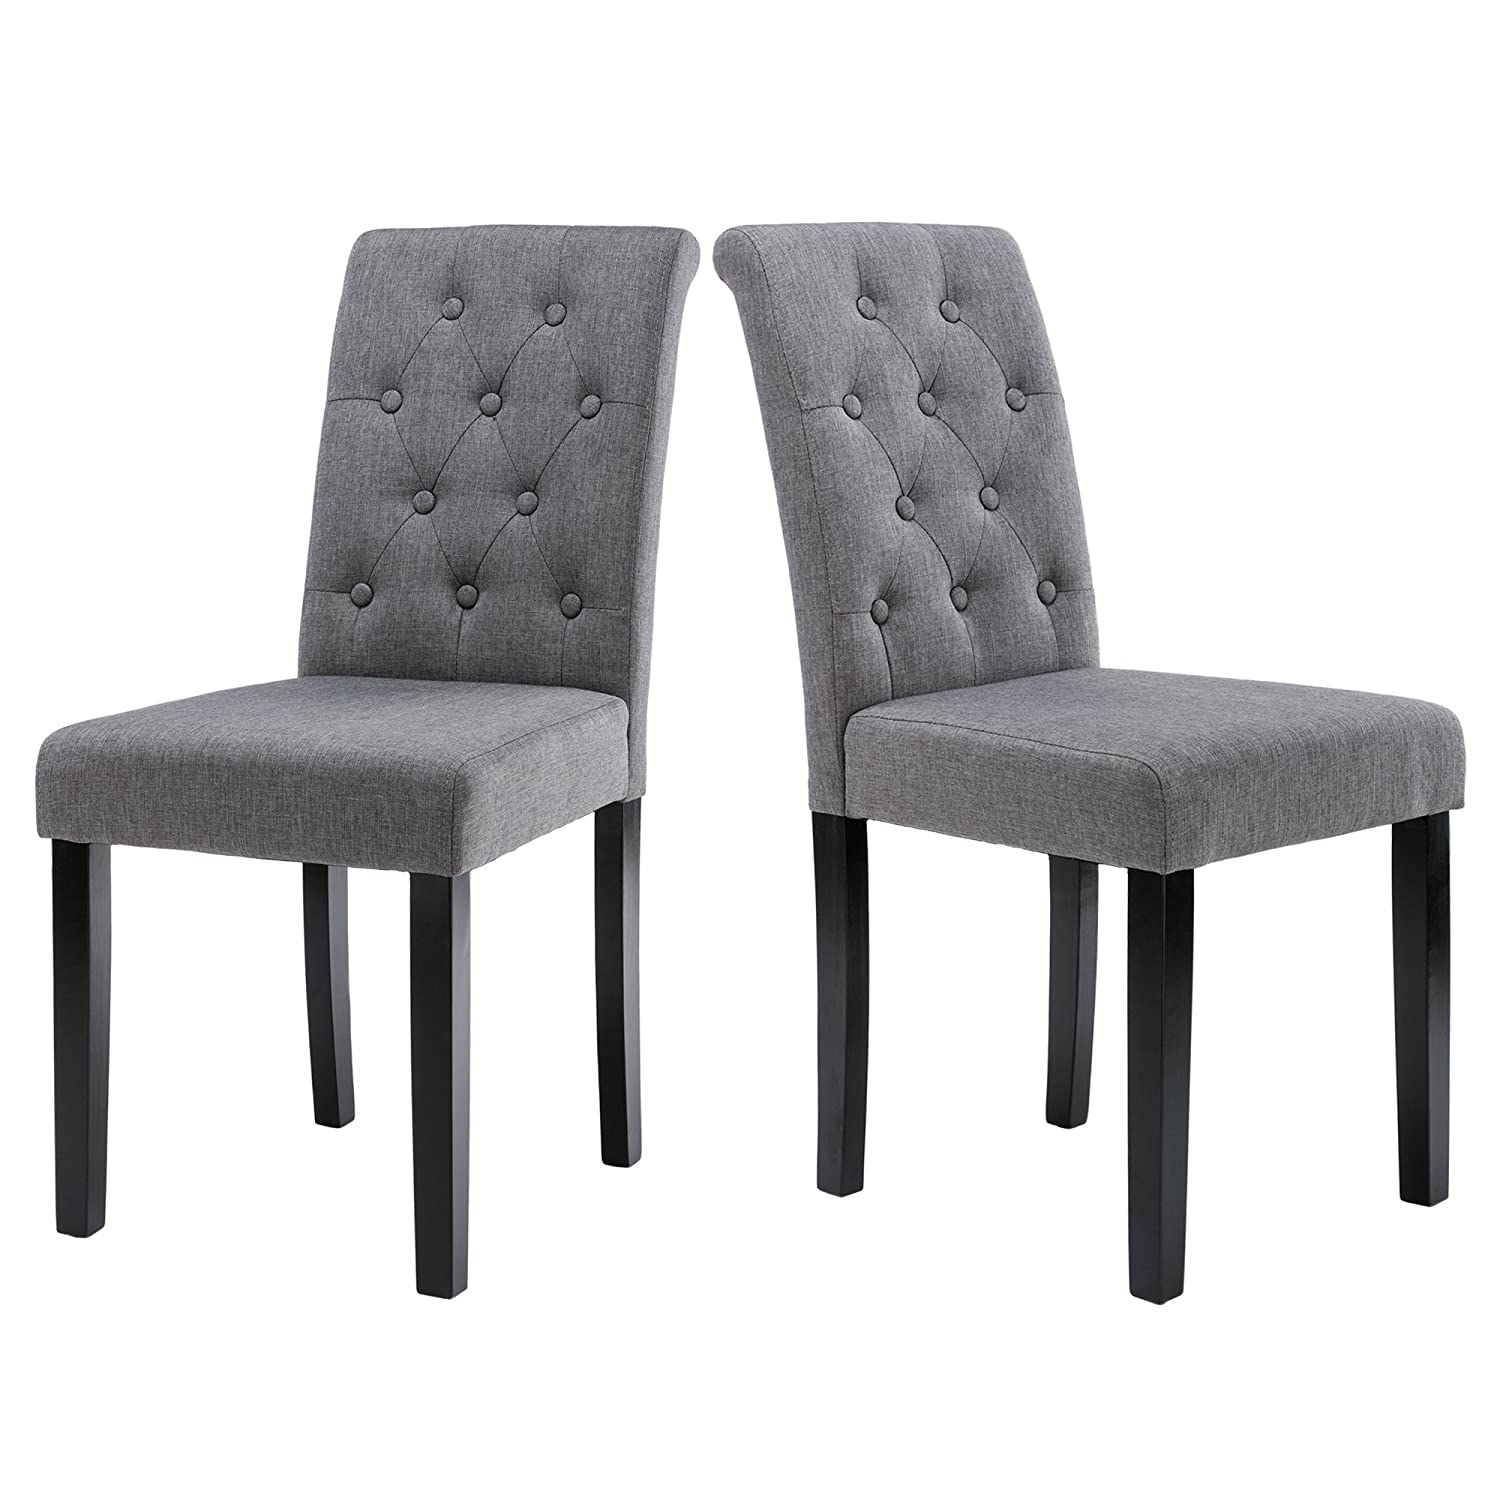 lssbought upholstered fabric dining chairs set of 2 gray